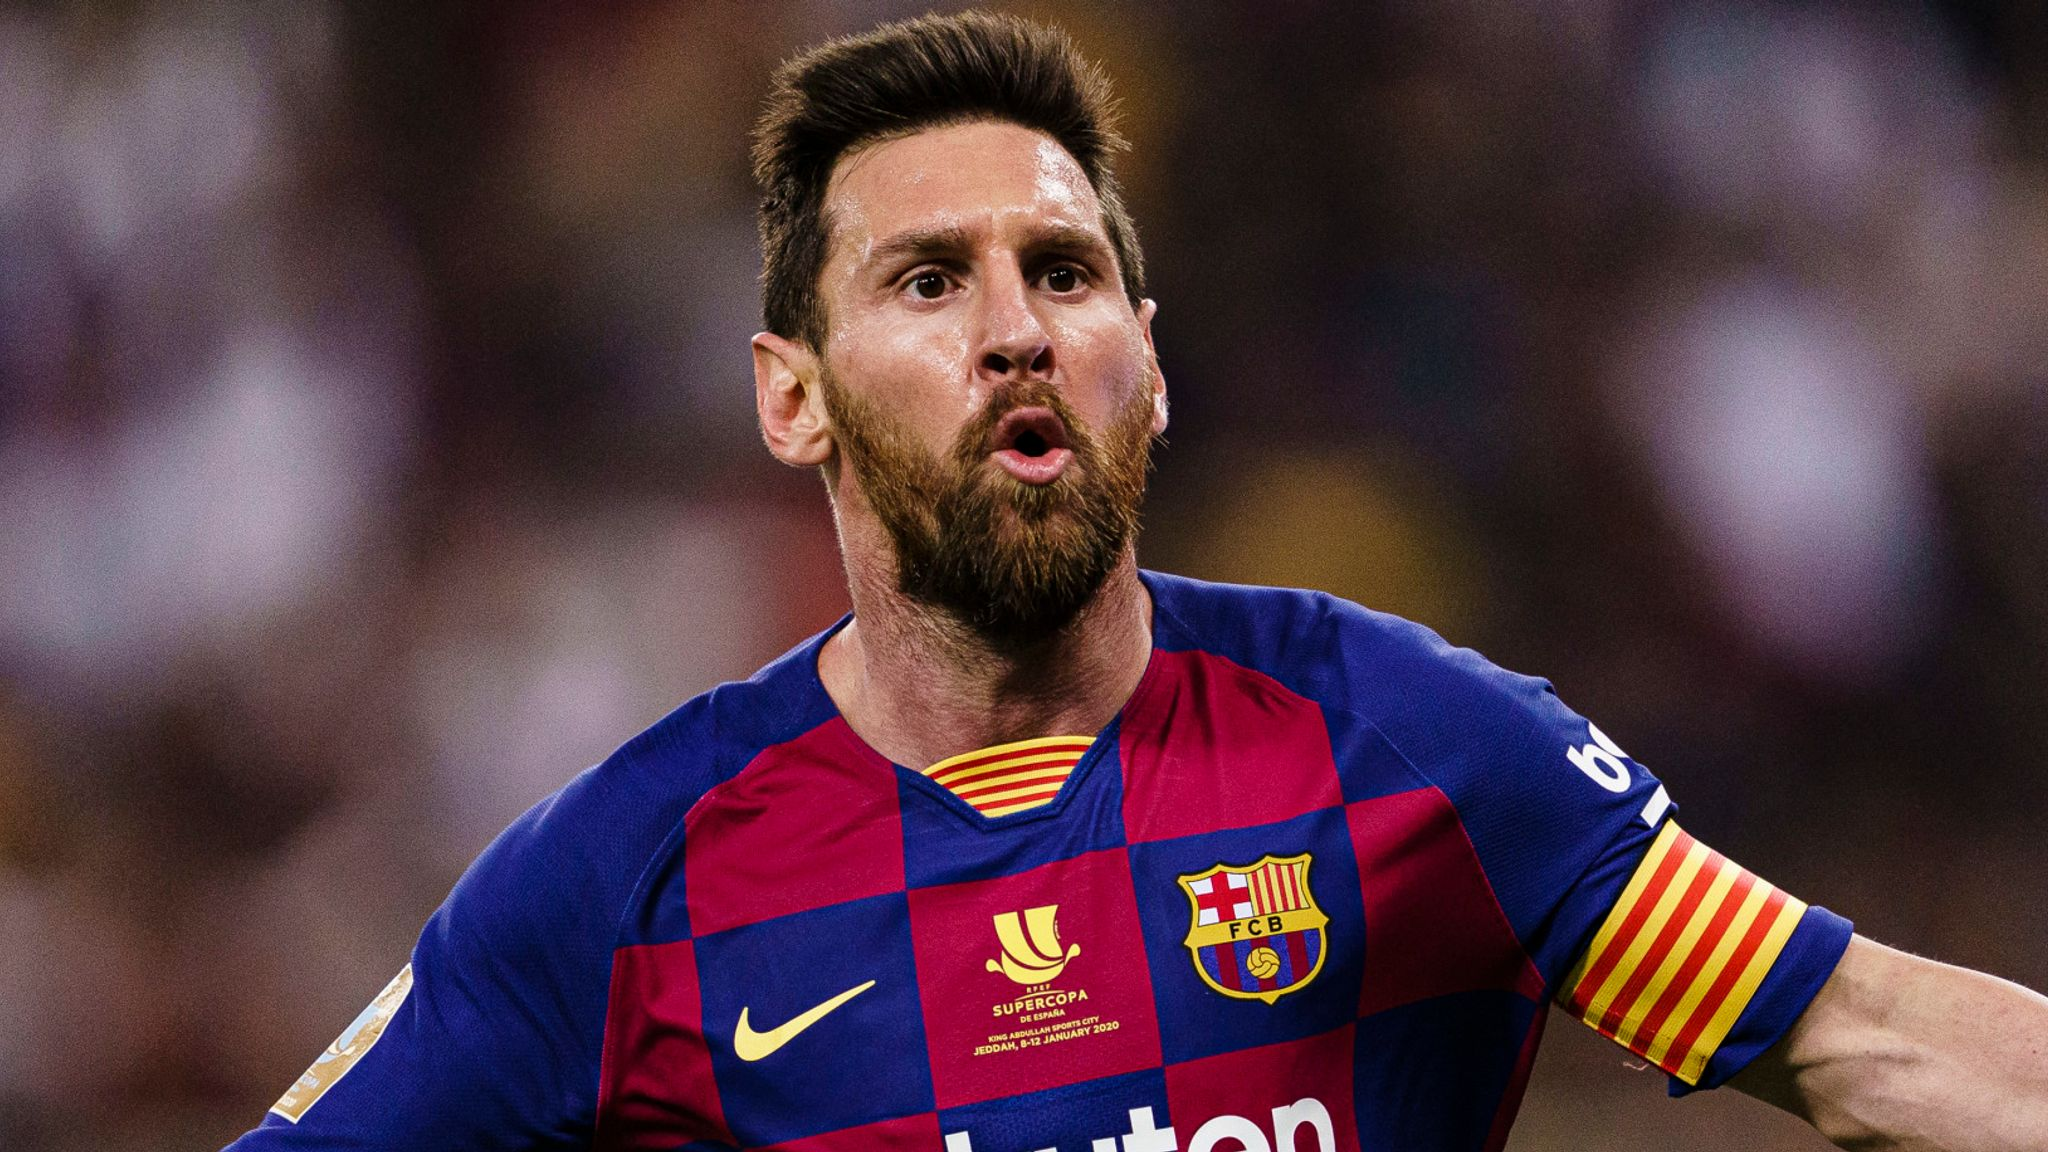 Get Messi Beard Wallpaper JPG